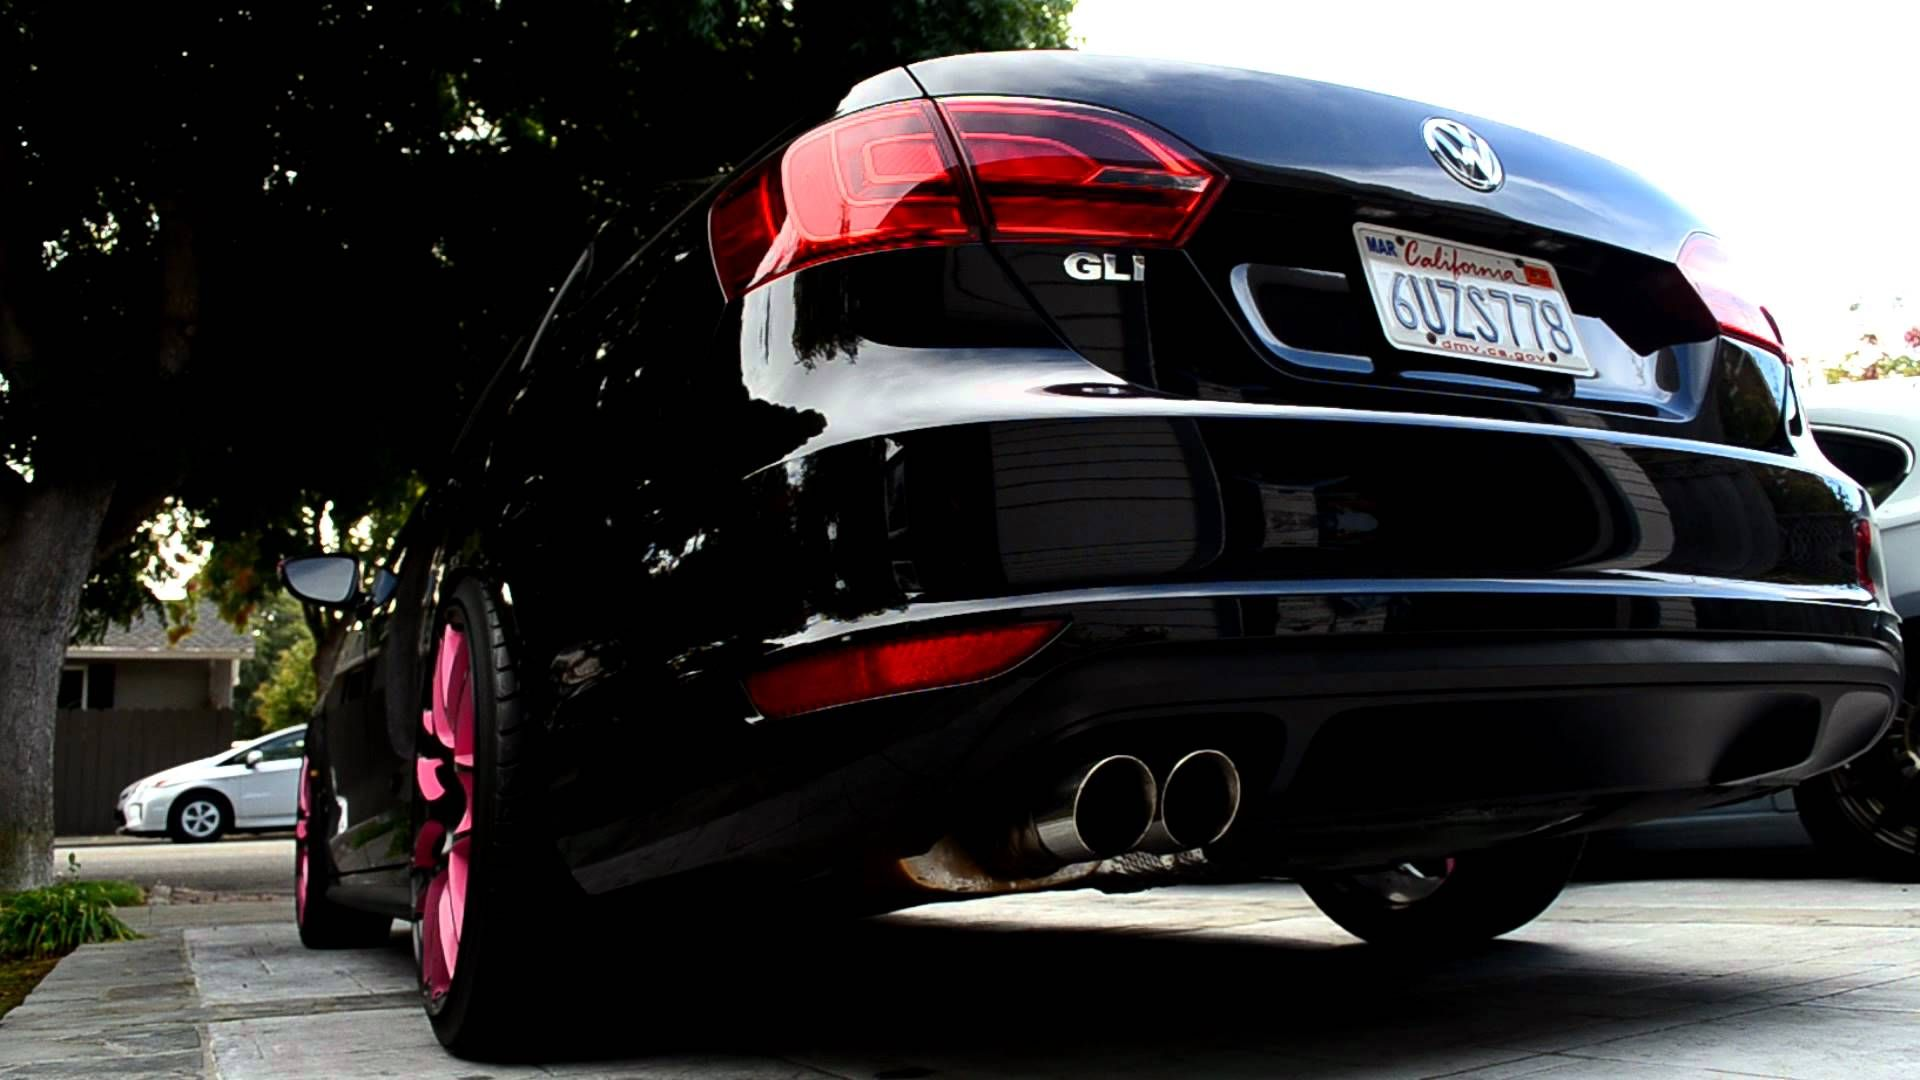 cf0de726f6b9e1cea781d1a5ef319968 Cool Review About Vw Jetta 2.5 with Inspiring Images Cars Review